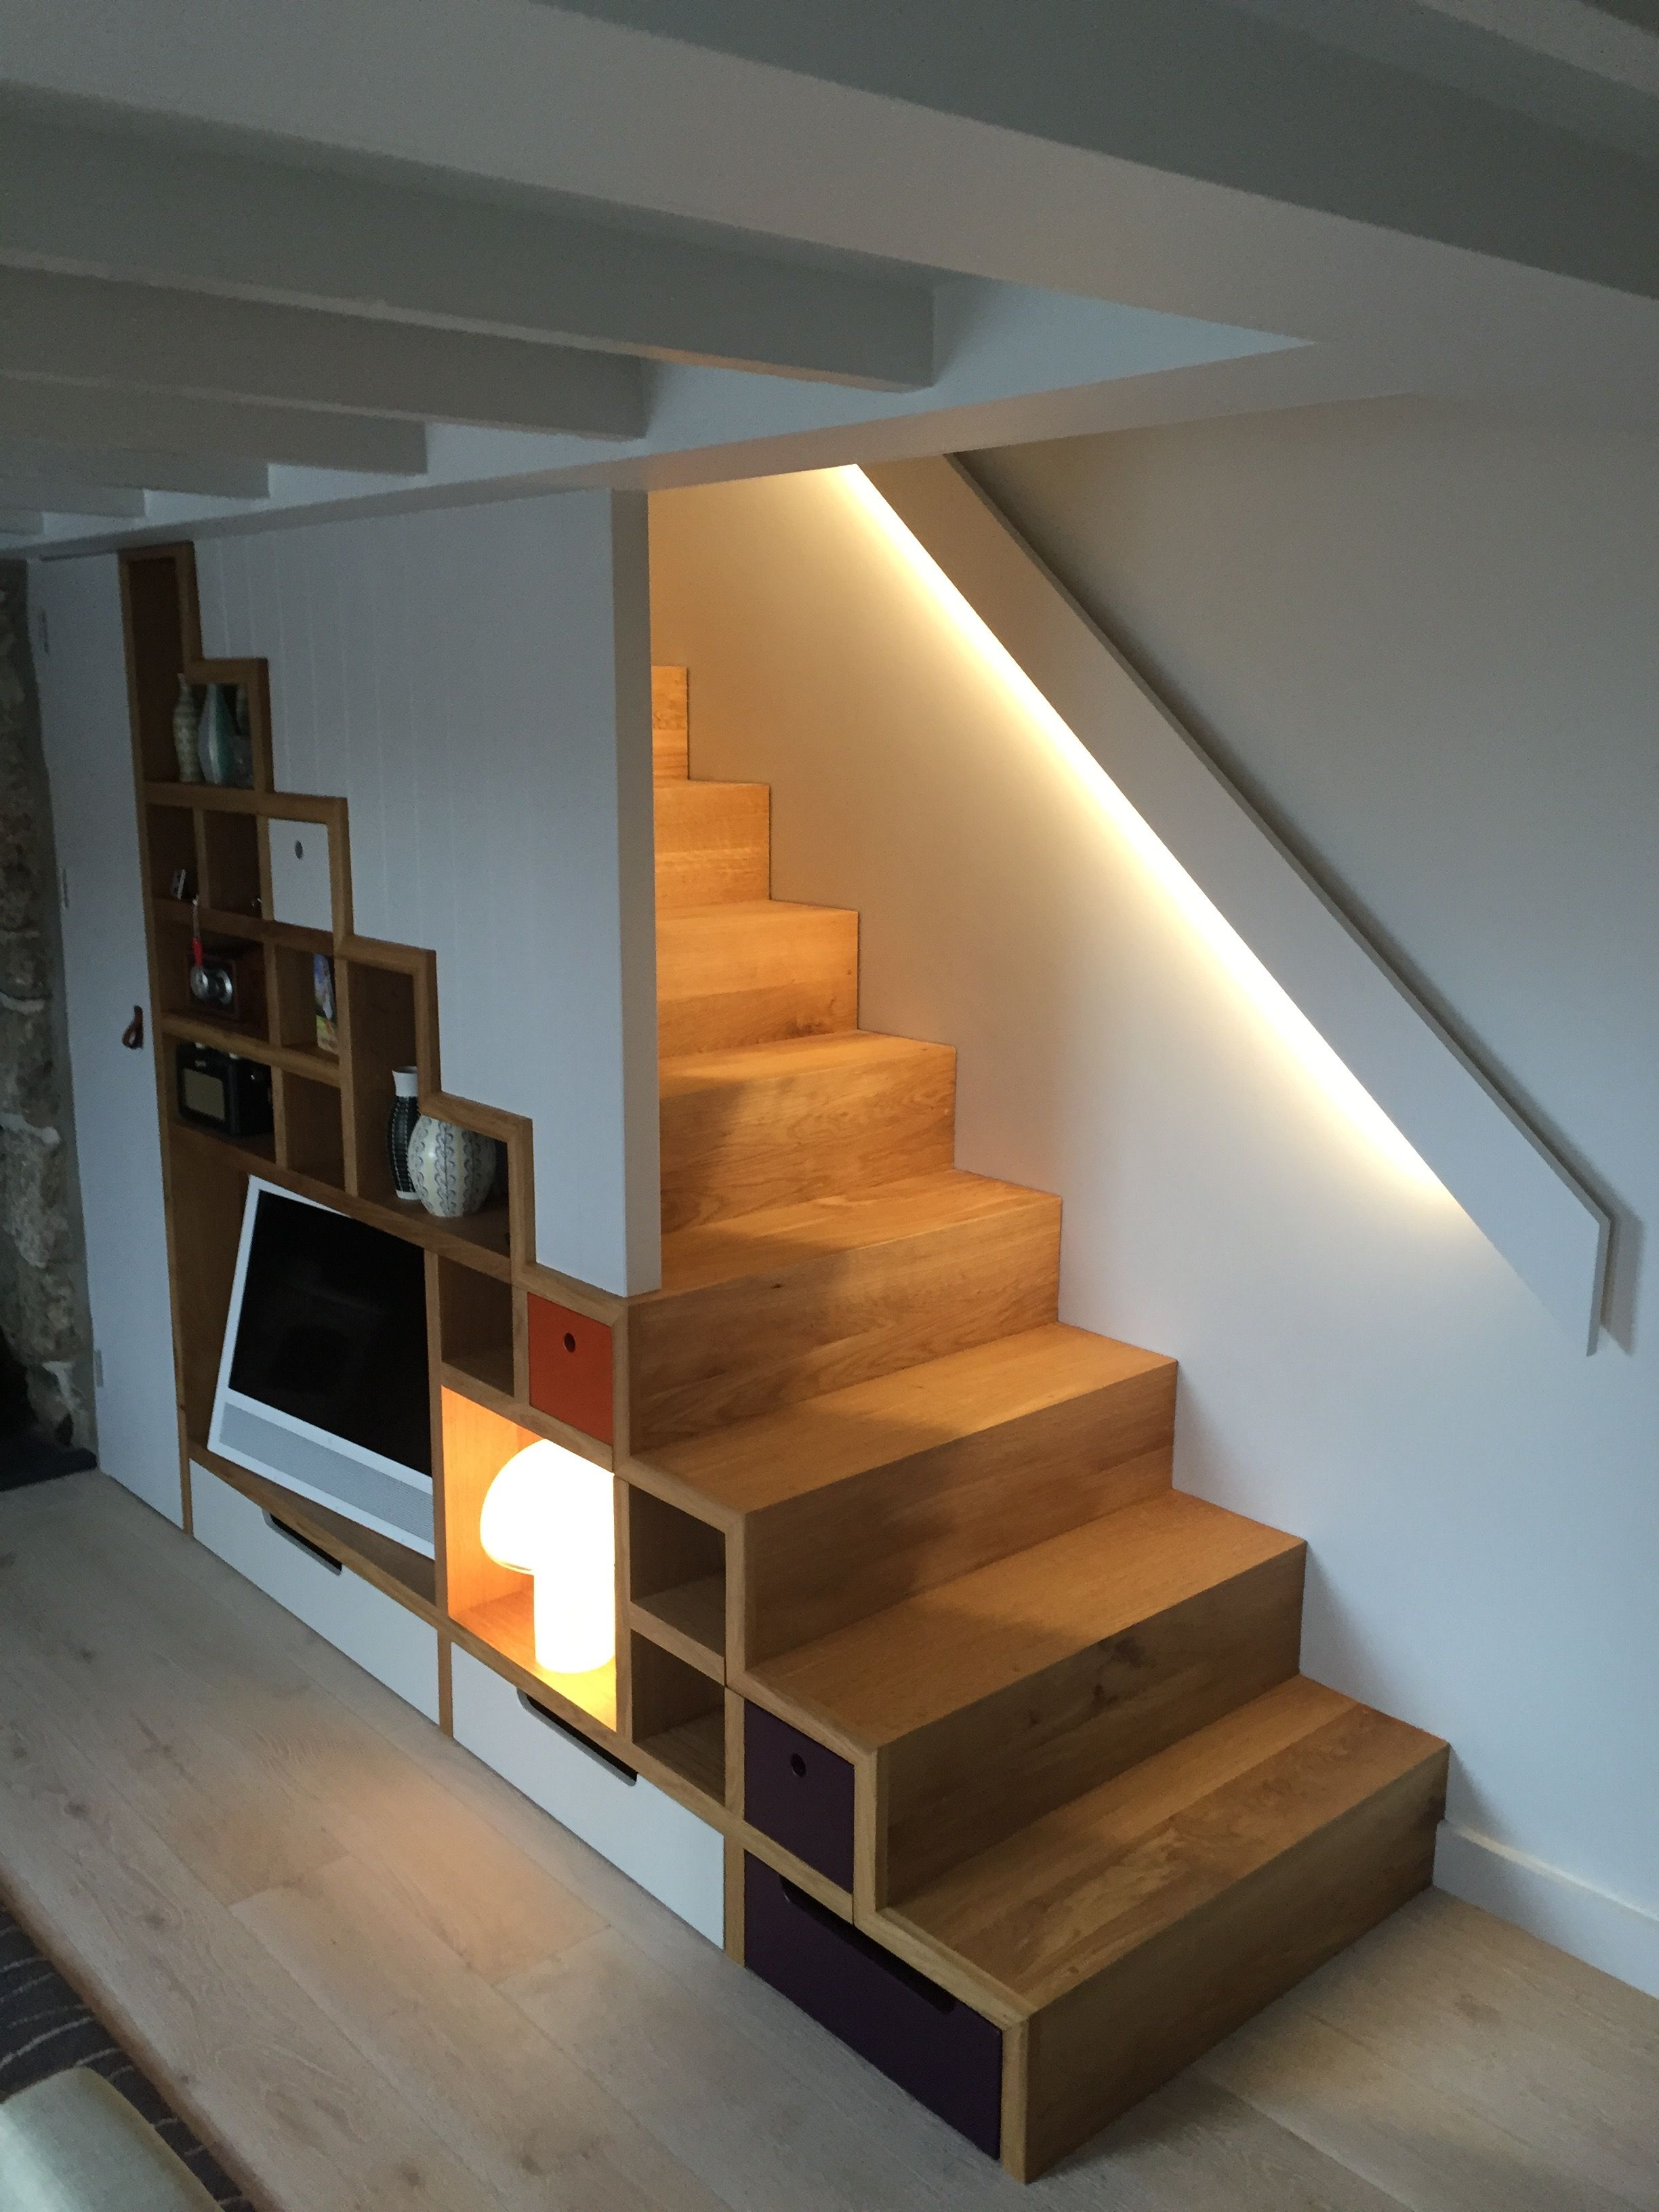 Bespoke Stair With Storage Incorporated By Studio West Architects Oak